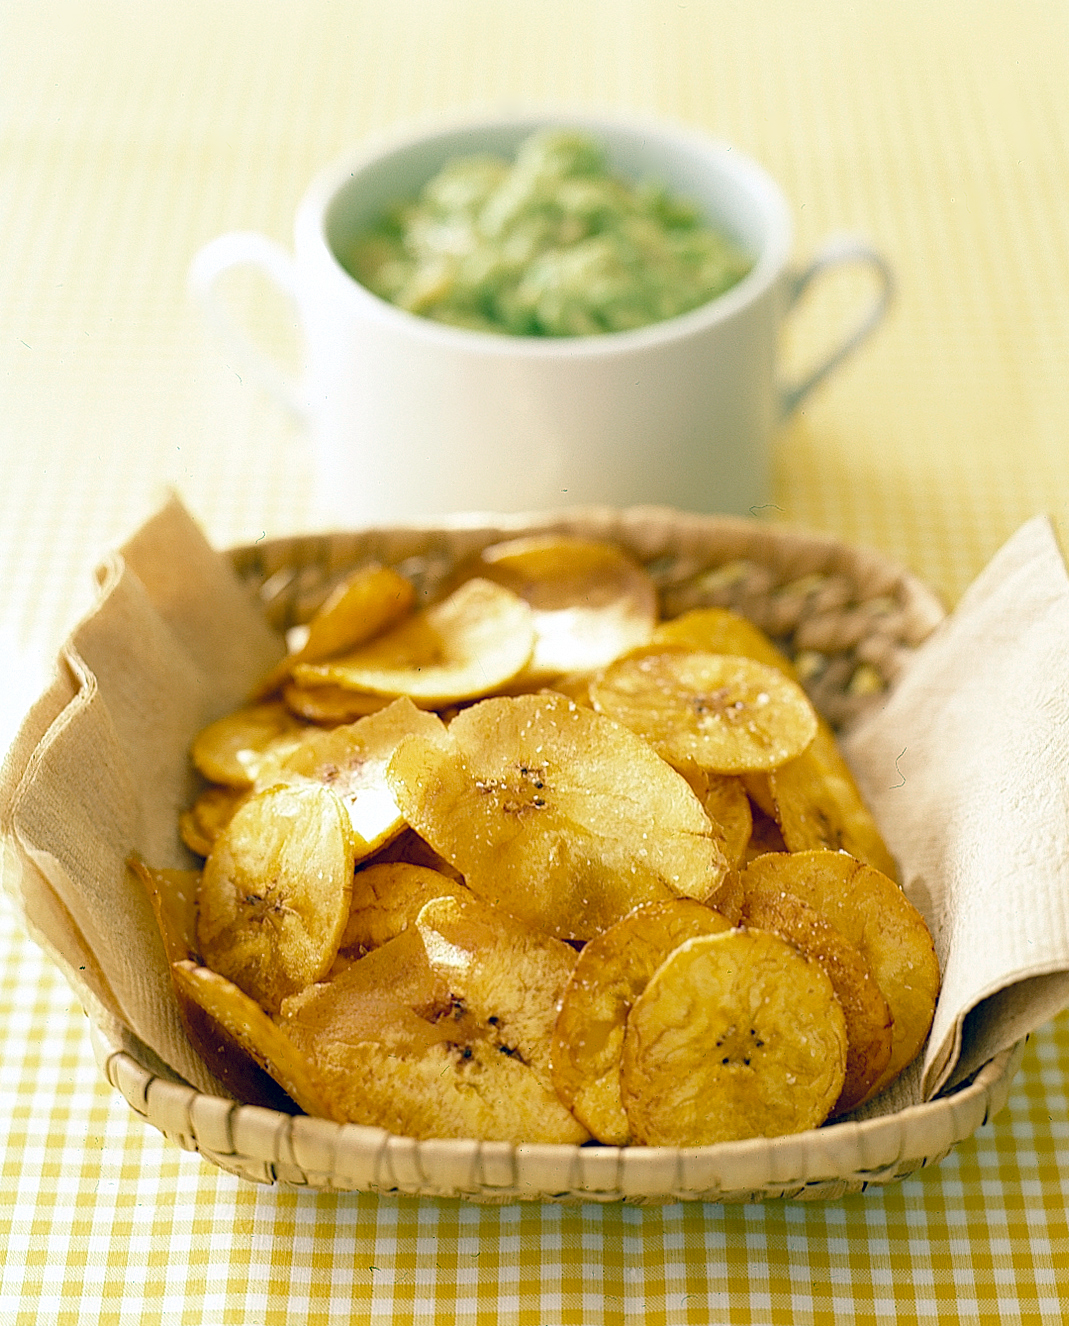 Banana-Avocado Dip with Plantain Chips